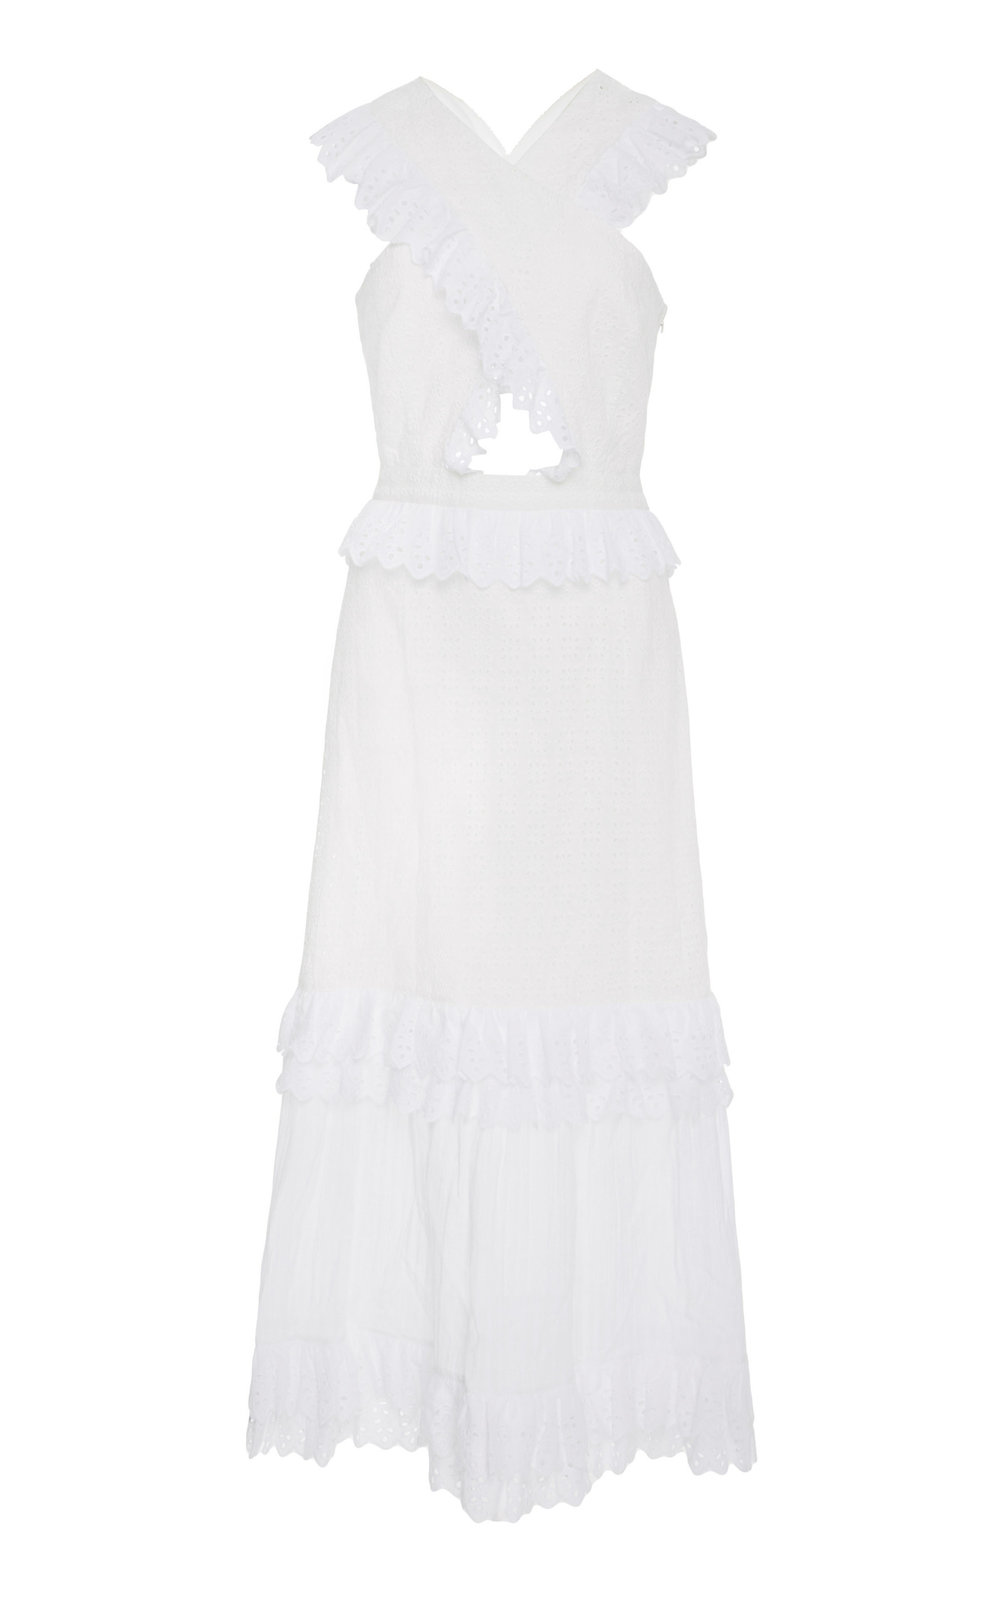 large_alice-mccall-white-everything-she-wants-midi-dress.jpg